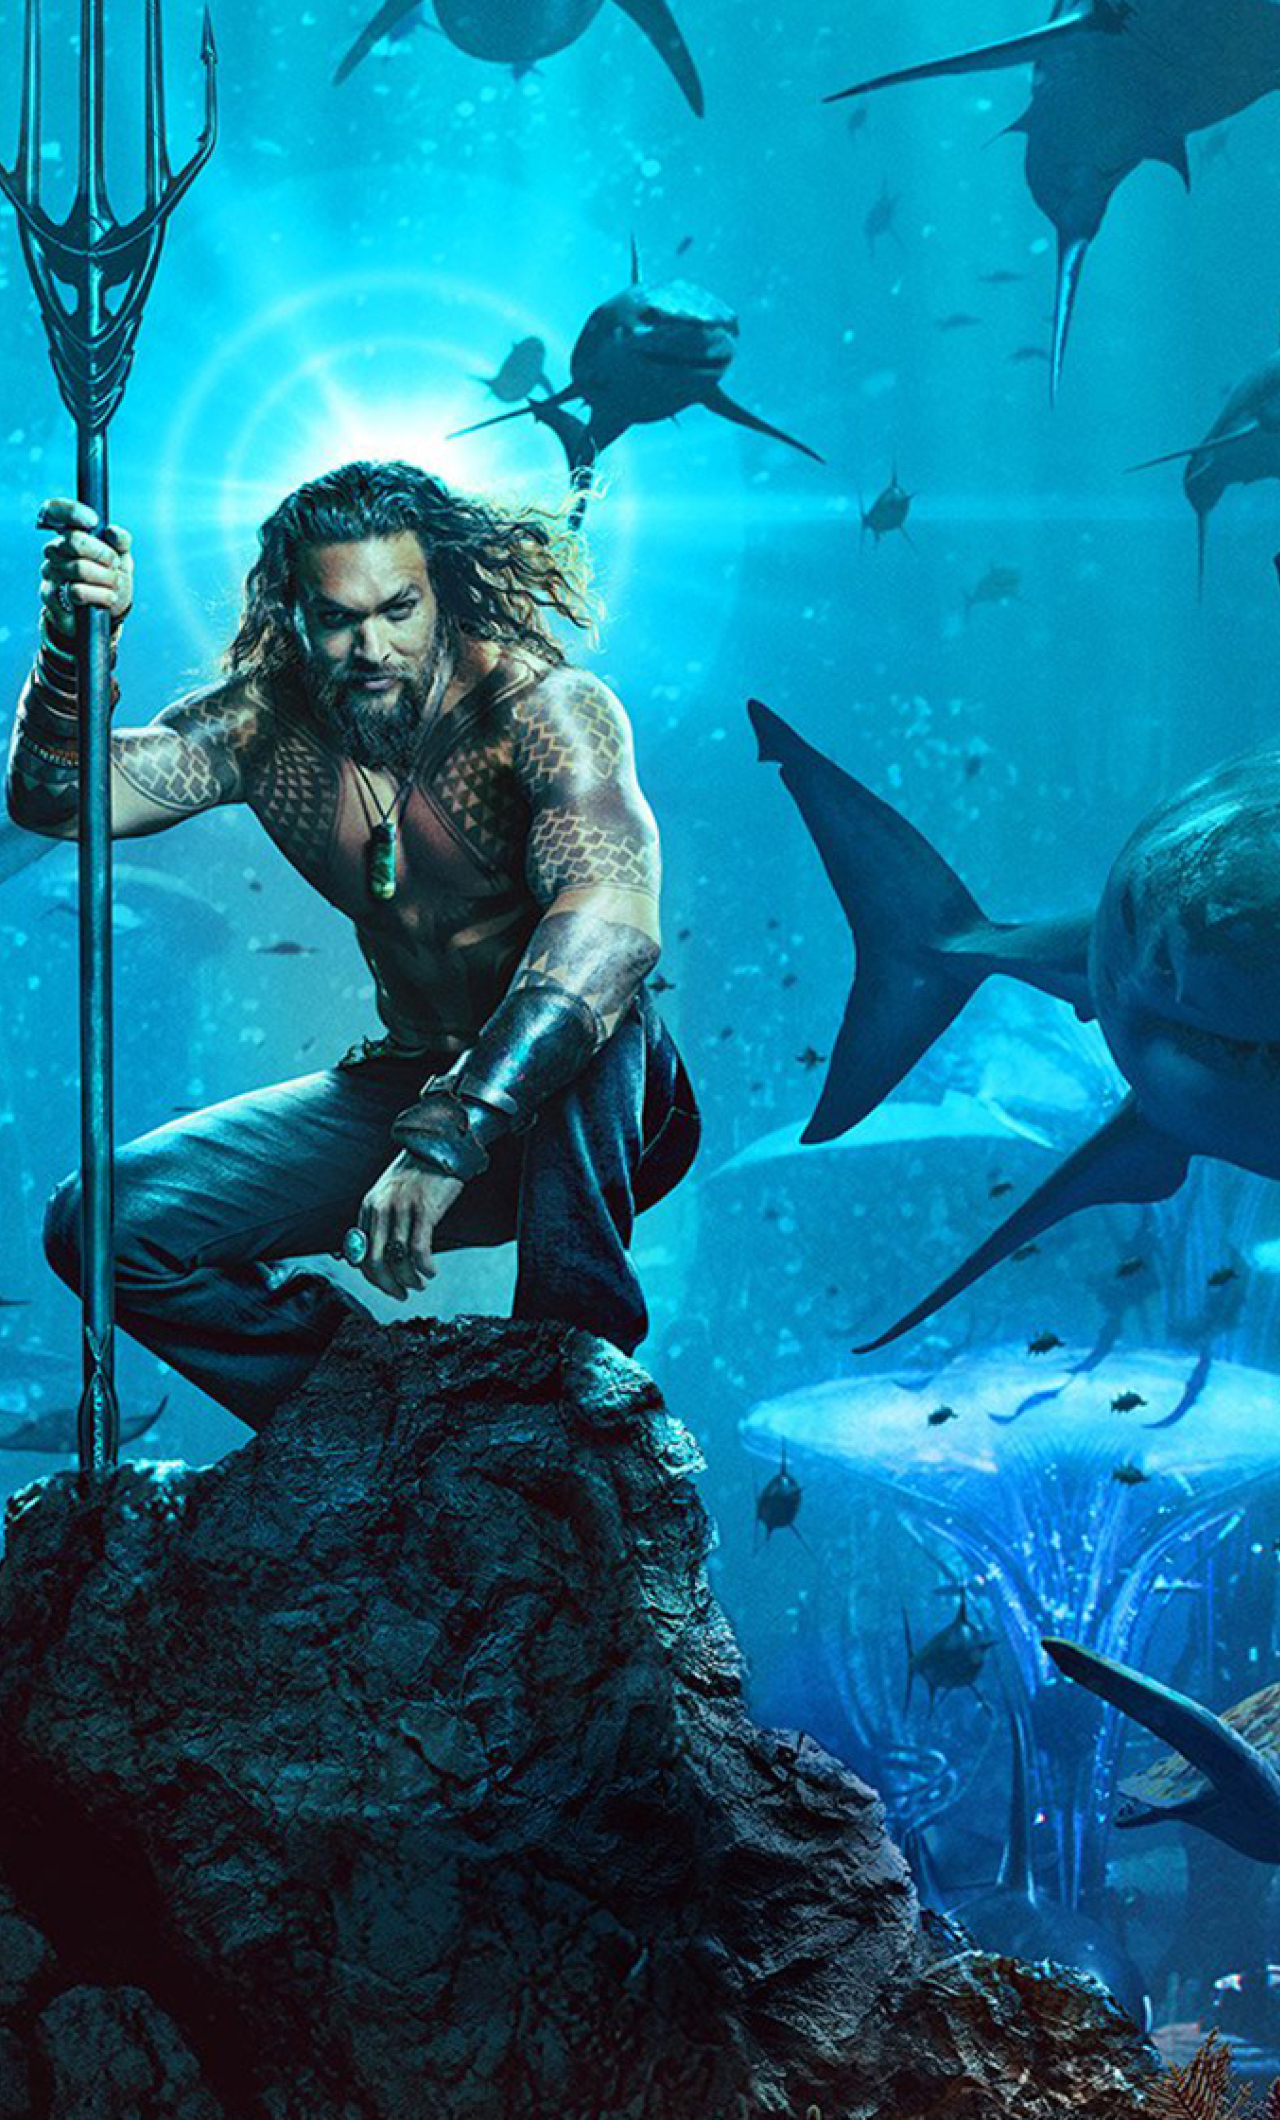 Download aquaman 2018 movie poster 480x854 resolution - Movie poster wallpaper ...